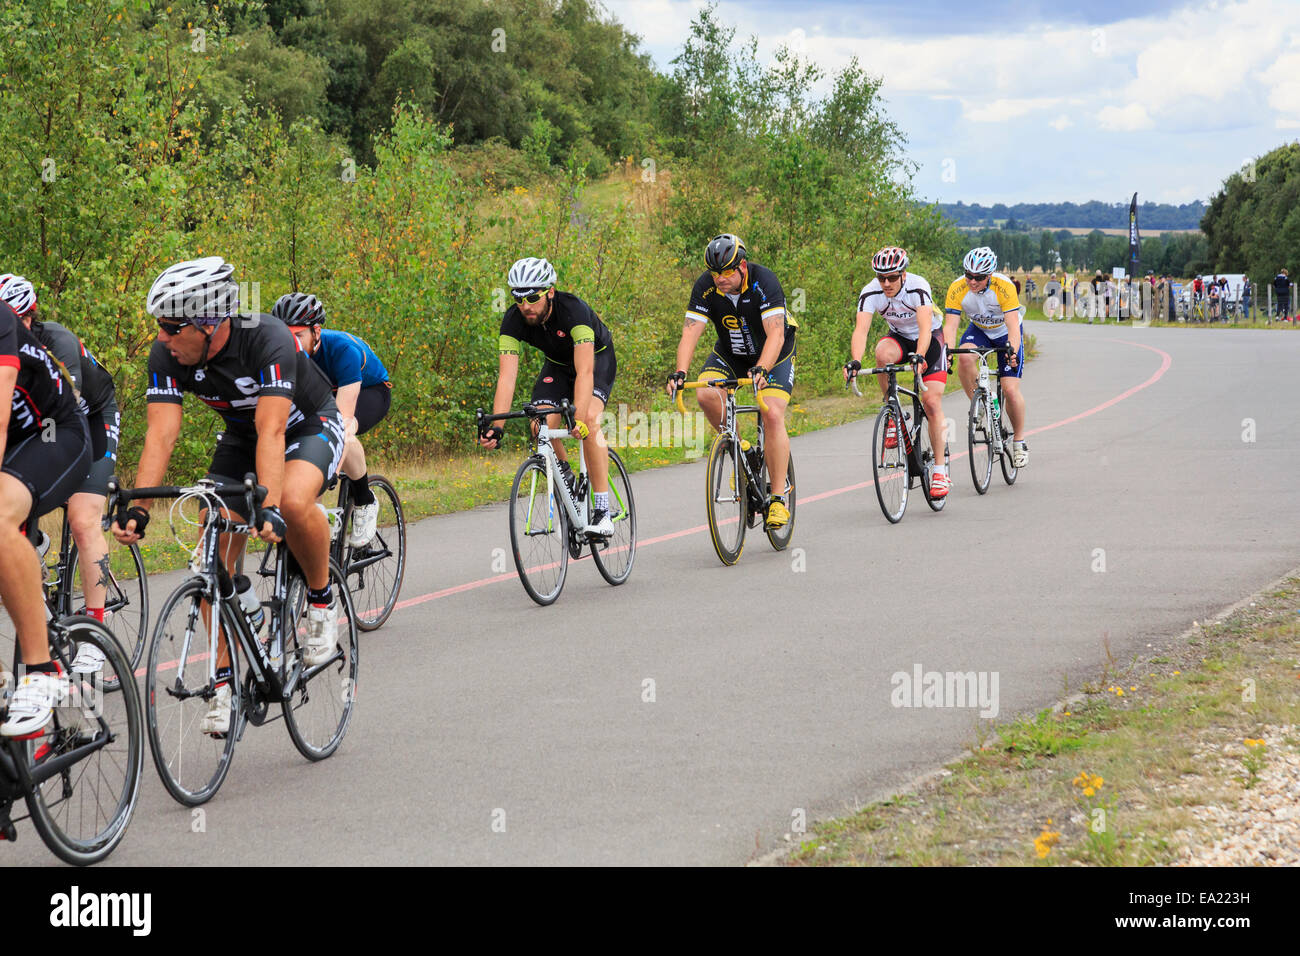 Men Racing In A Bike Race Organised By British Cycling At Fowlmead